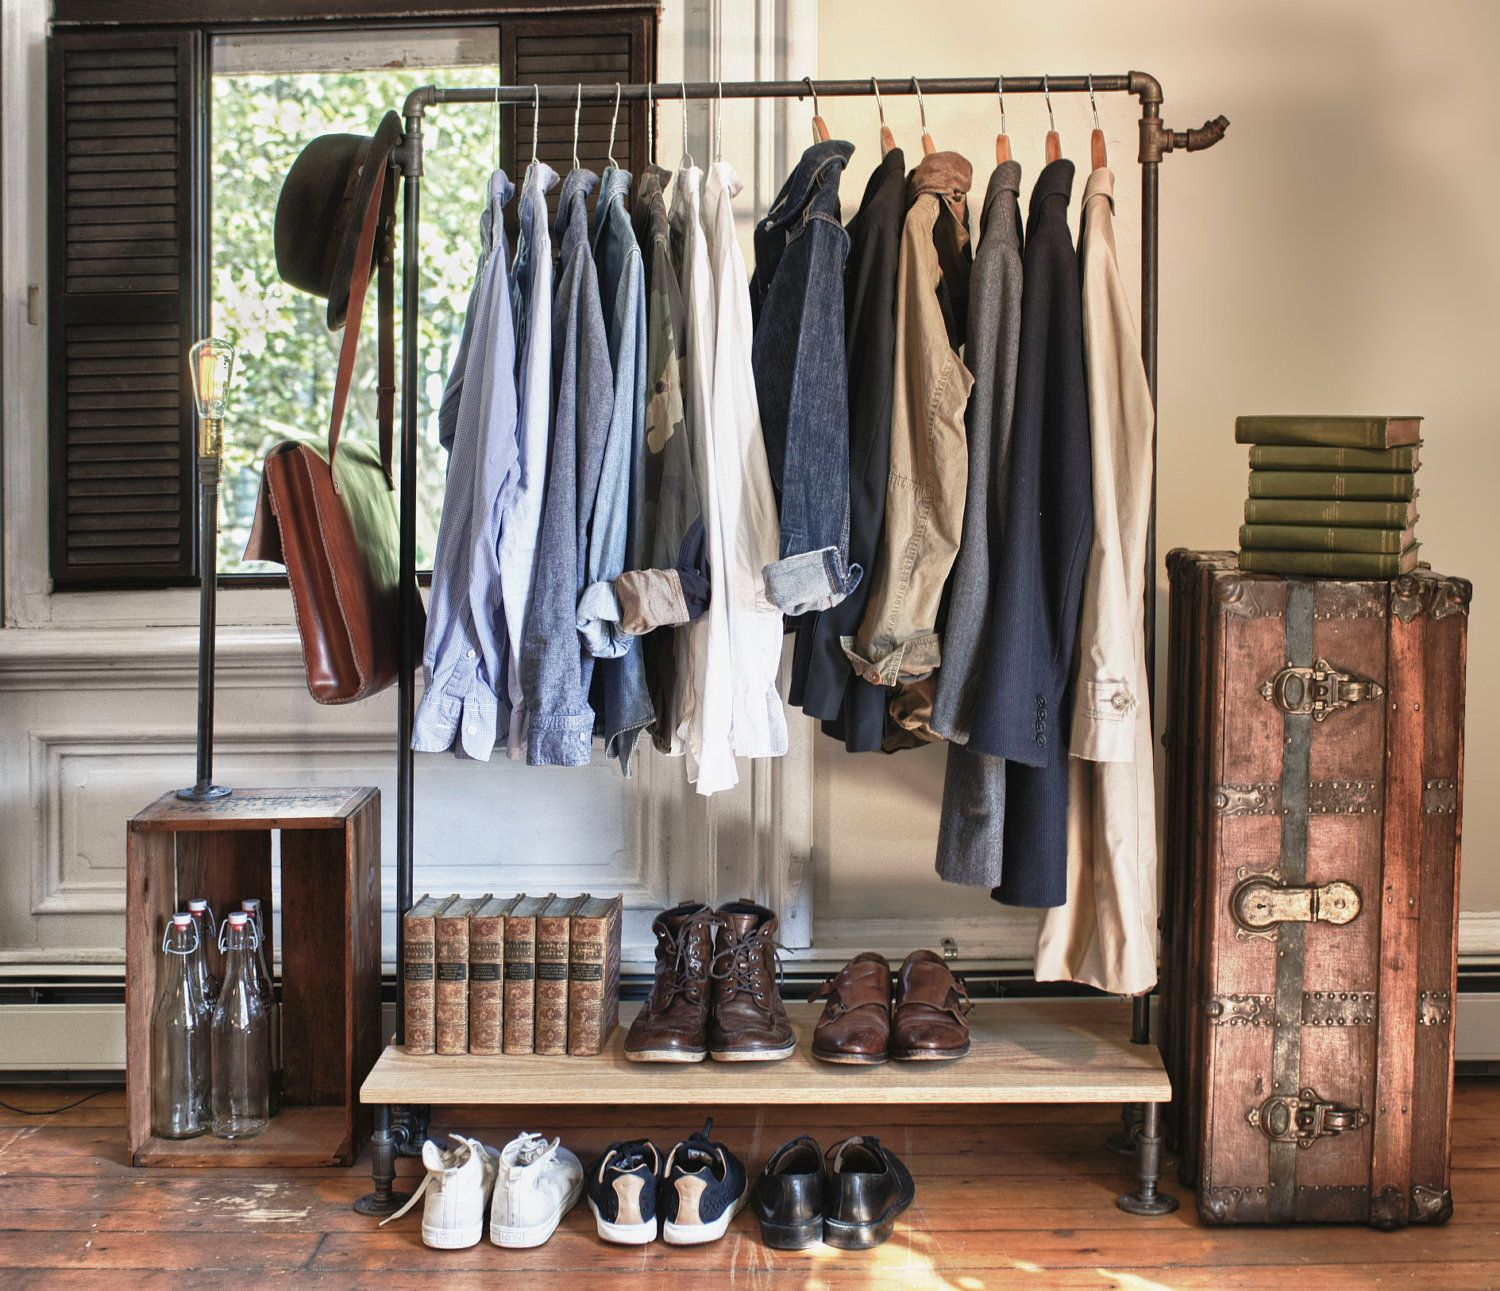 11 Best Images About Bratby On Pinterest: Best 25+ Clothing Racks Ideas On Pinterest